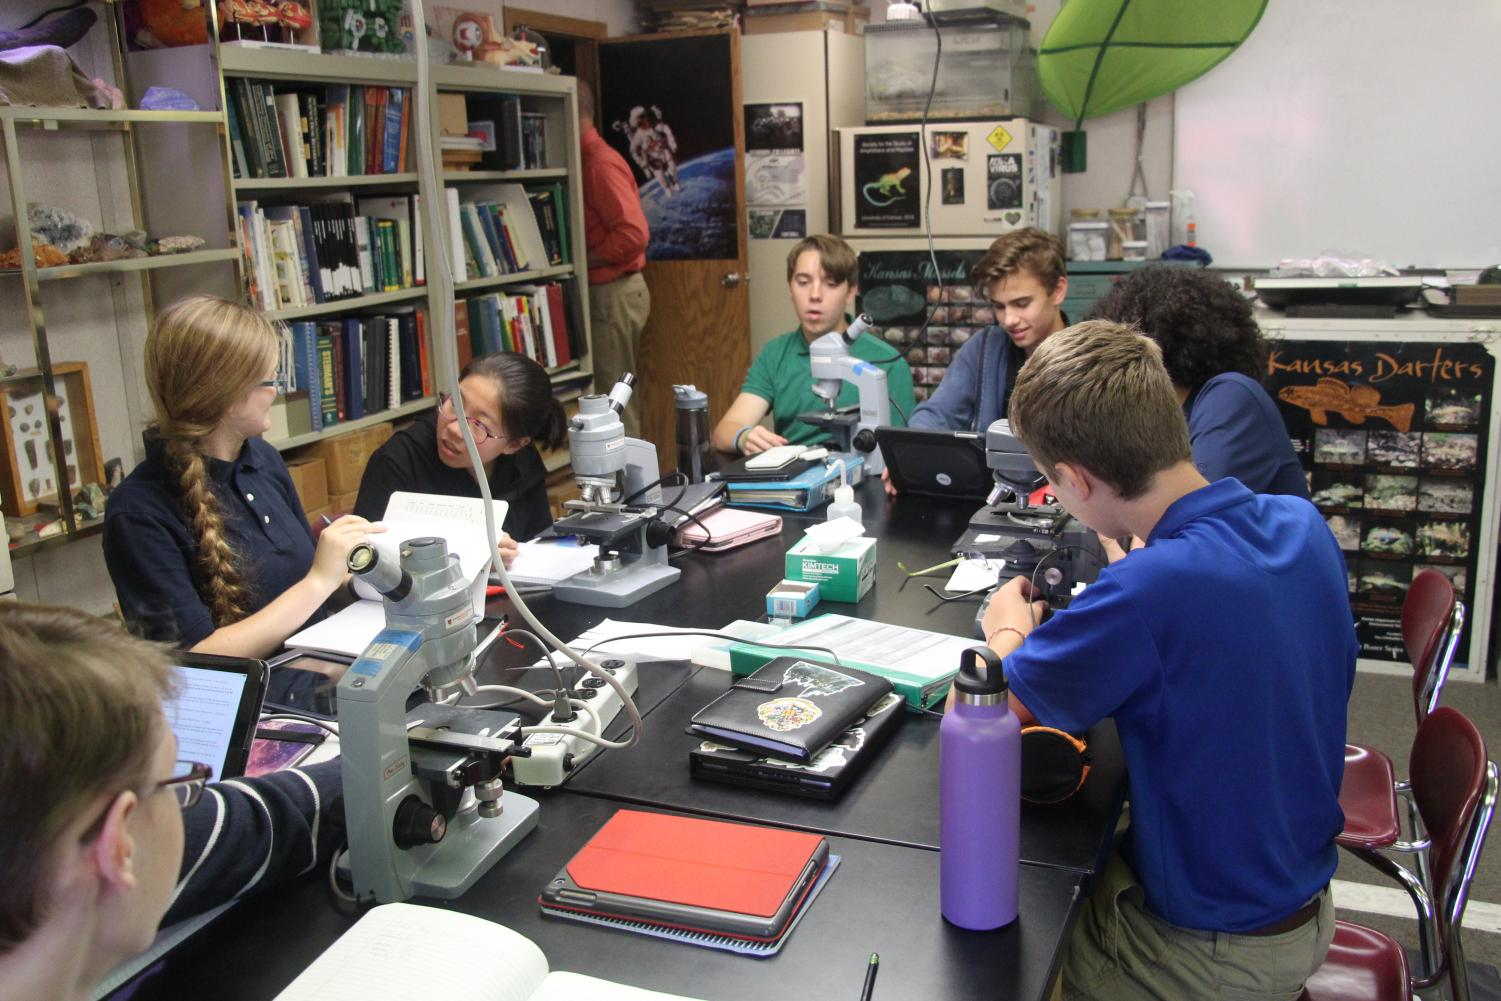 Left+to+Right%3A+Freshman+Valene+McInerney%2C+Celia+Liu%2C+Owen+Ross+and+Lear+Eicher+study+under+microscopes.+They+were+studying+water+samples+from+the+pond.